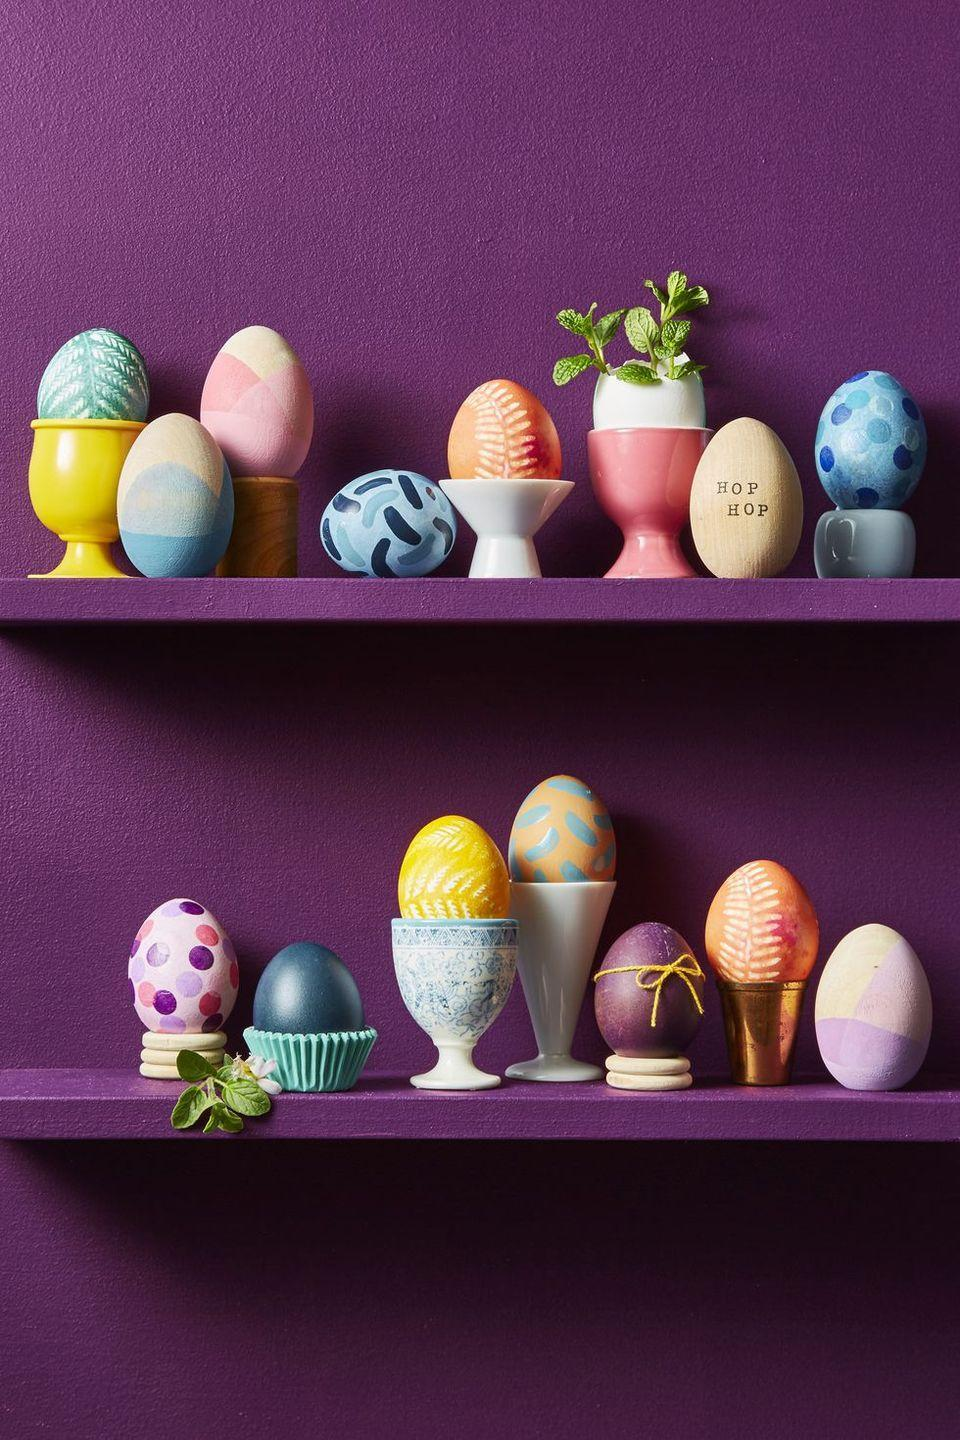 """<p>Sprinkle Easter decor throughout your home — bookcases and cabinets included. The choice is yours: Place decorated eggs on porcelain stands, napkin holders, wood craft rings, or even paper cupcake liners for an extra oomph.</p><p><a class=""""link rapid-noclick-resp"""" href=""""https://www.amazon.com/PORCELAIN-CUPCAKE-TREAT-PEDESTAL-STANDS/dp/B00B0139EM?tag=syn-yahoo-20&ascsubtag=%5Bartid%7C10055.g.2217%5Bsrc%7Cyahoo-us"""" rel=""""nofollow noopener"""" target=""""_blank"""" data-ylk=""""slk:BUY PORCELAIN STANDS"""">BUY PORCELAIN STANDS</a> <br></p>"""